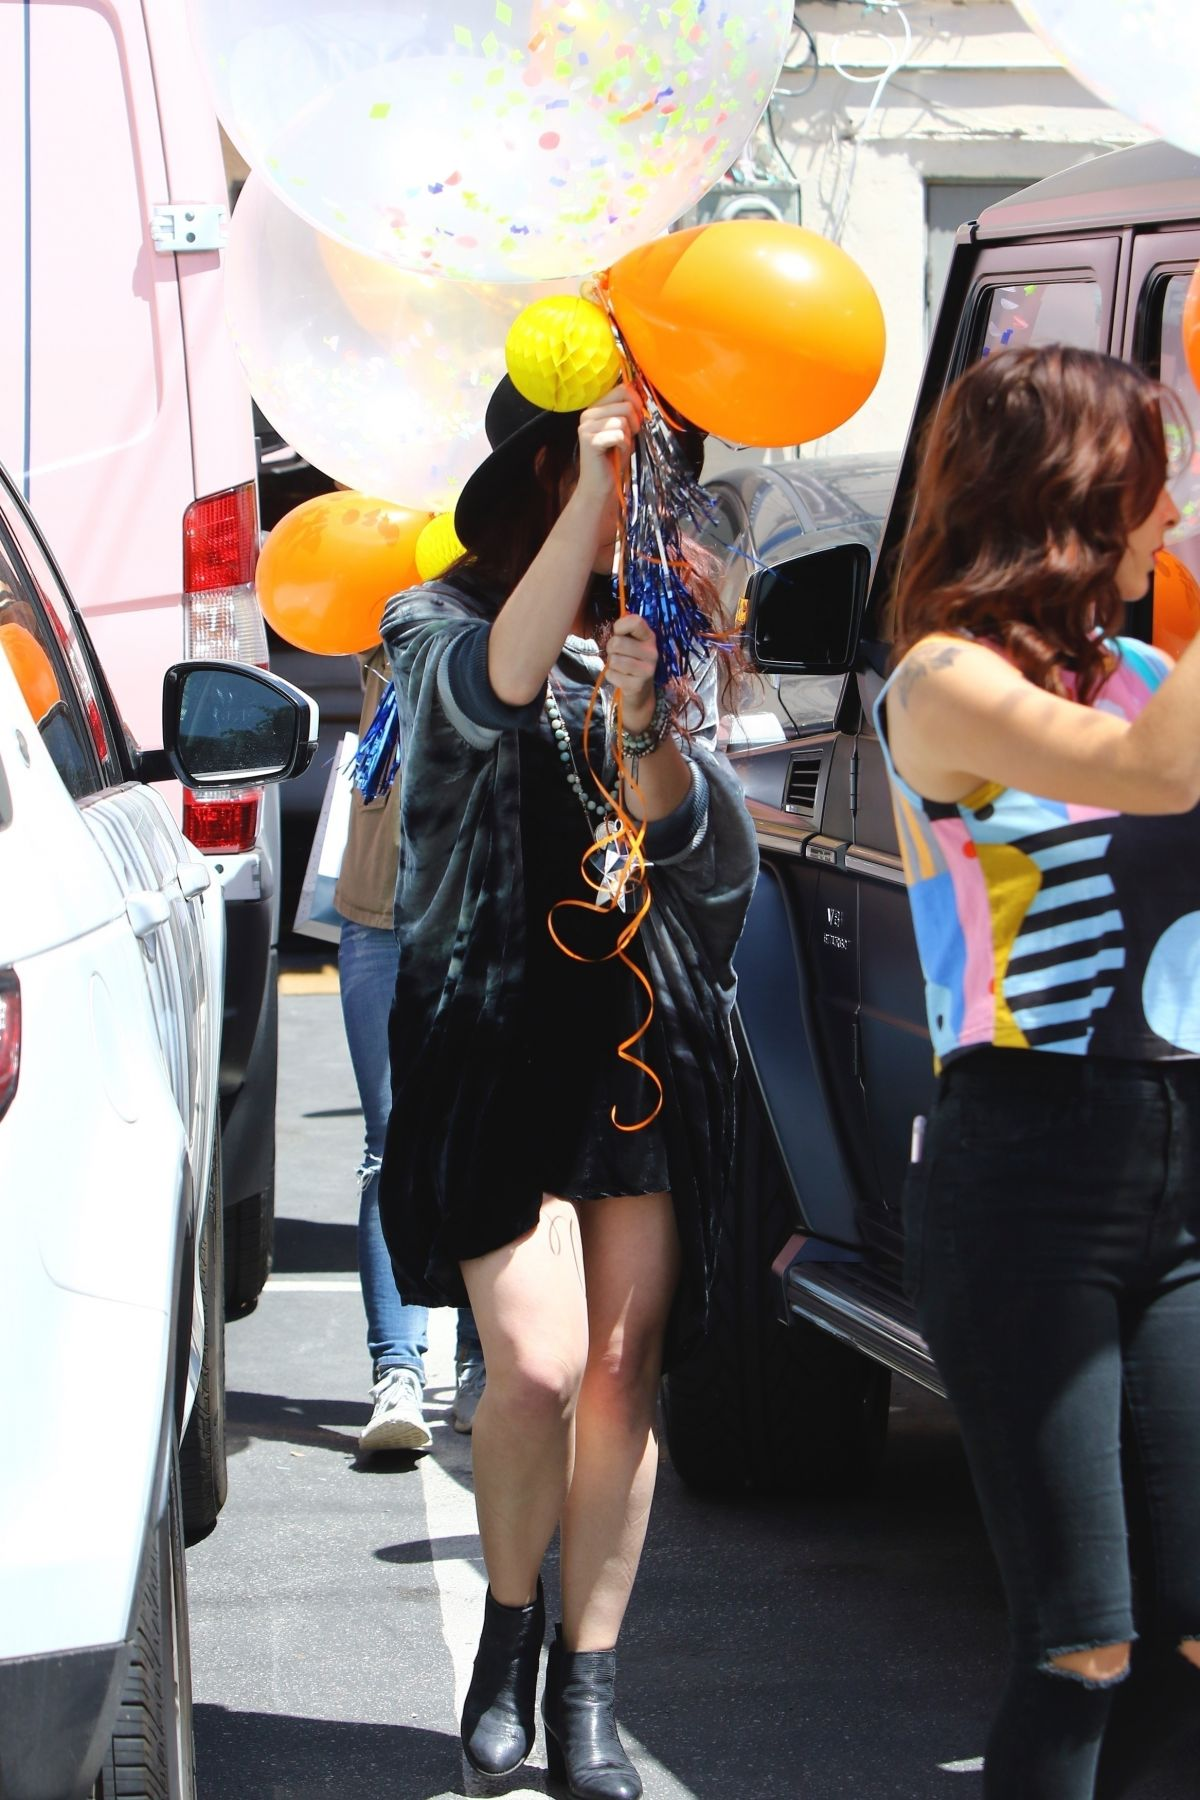 Hilary Duff Picking Up Some Gigantic Party Balloons For A Friends Birthday In Los Angeles